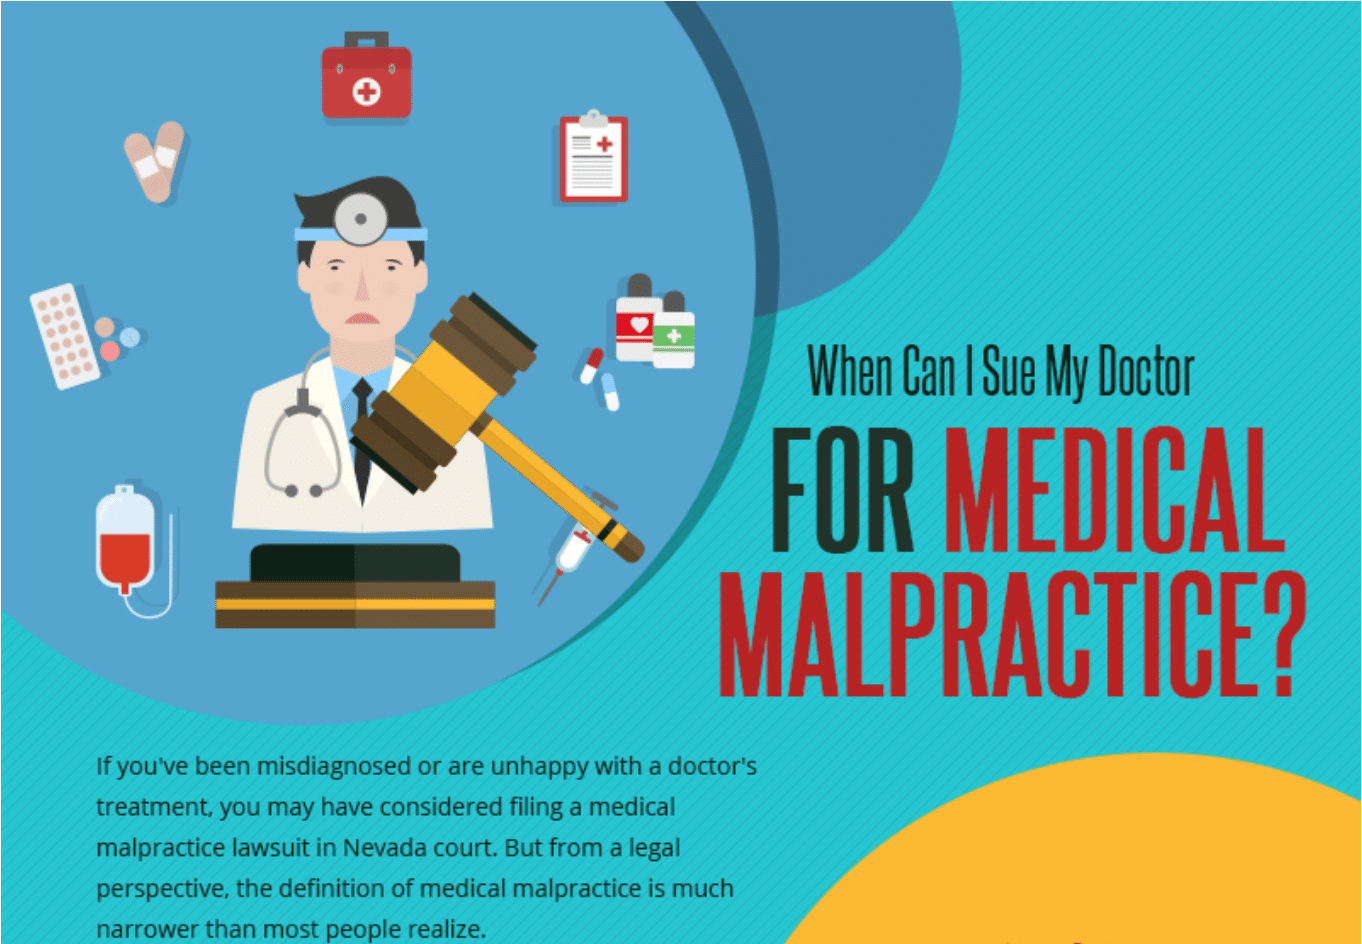 when can i sue my doctor for medical malpractice? | mathew l sharp